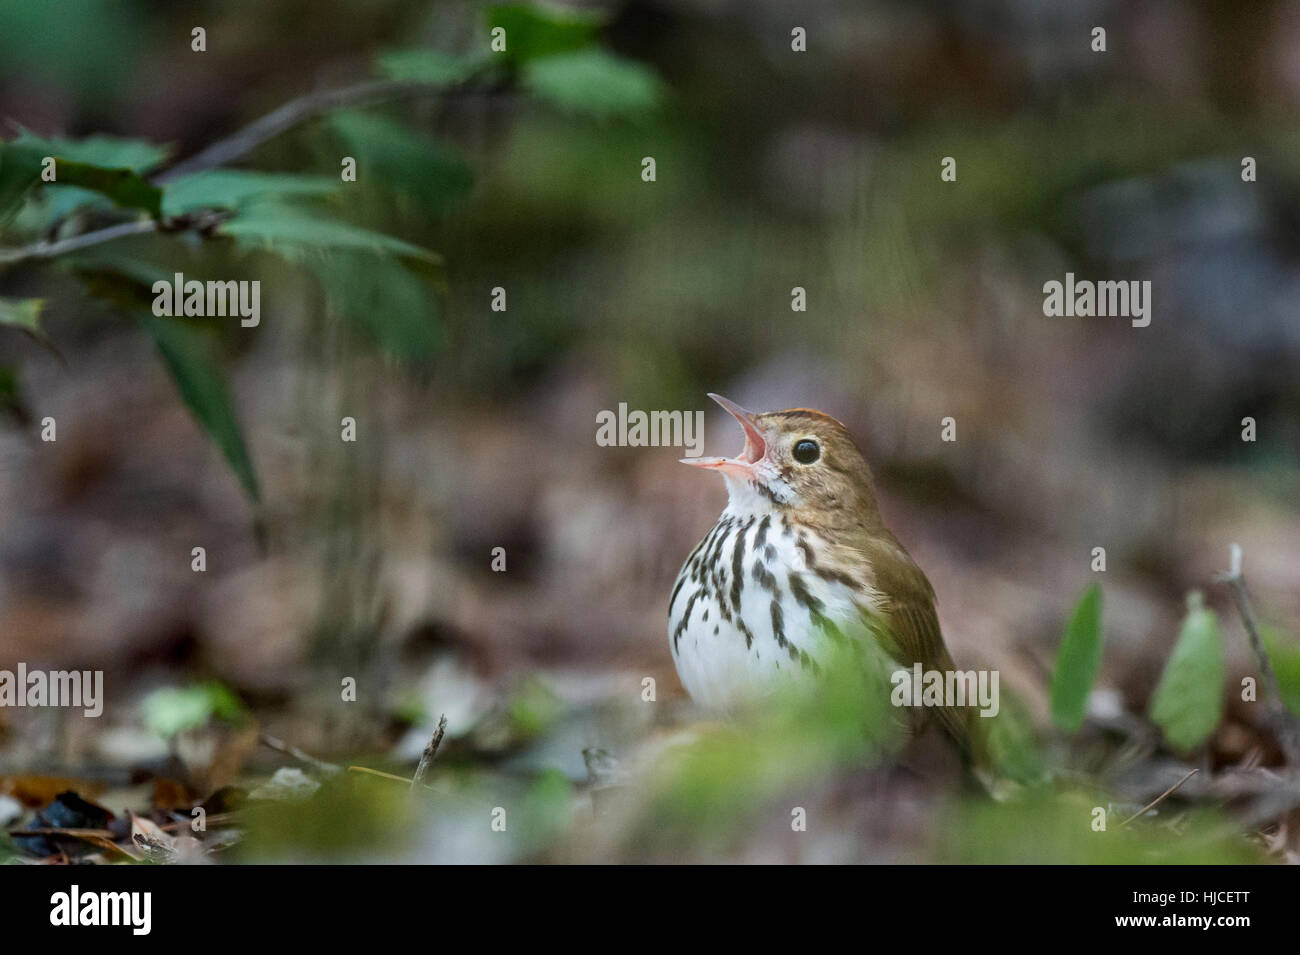 An Ovenbird sings loudly as it sits on the forest floor with some green leaves around it. - Stock Image